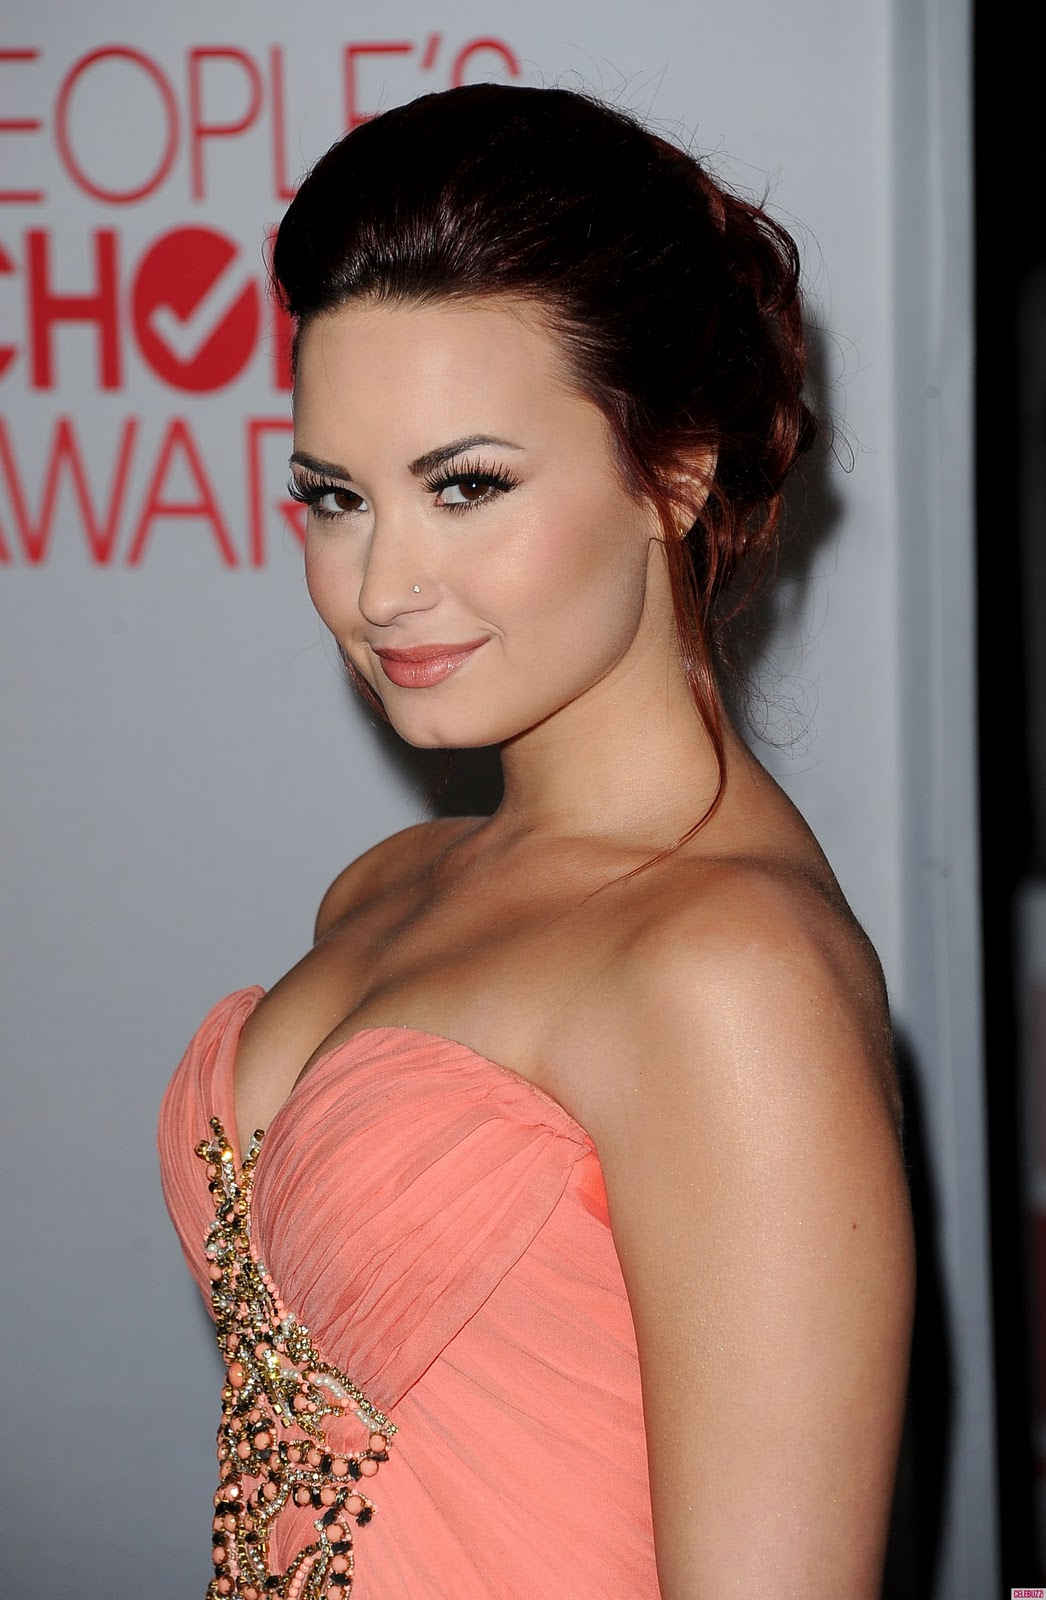 http://4.bp.blogspot.com/-BAOqEuMMAHM/TxYk05UB6II/AAAAAAAAA1I/aKv1sYhx4kg/s1600/Demi-Lovato-at-2012-Peoples-Choice-Awards-5-1961x3000.jpg